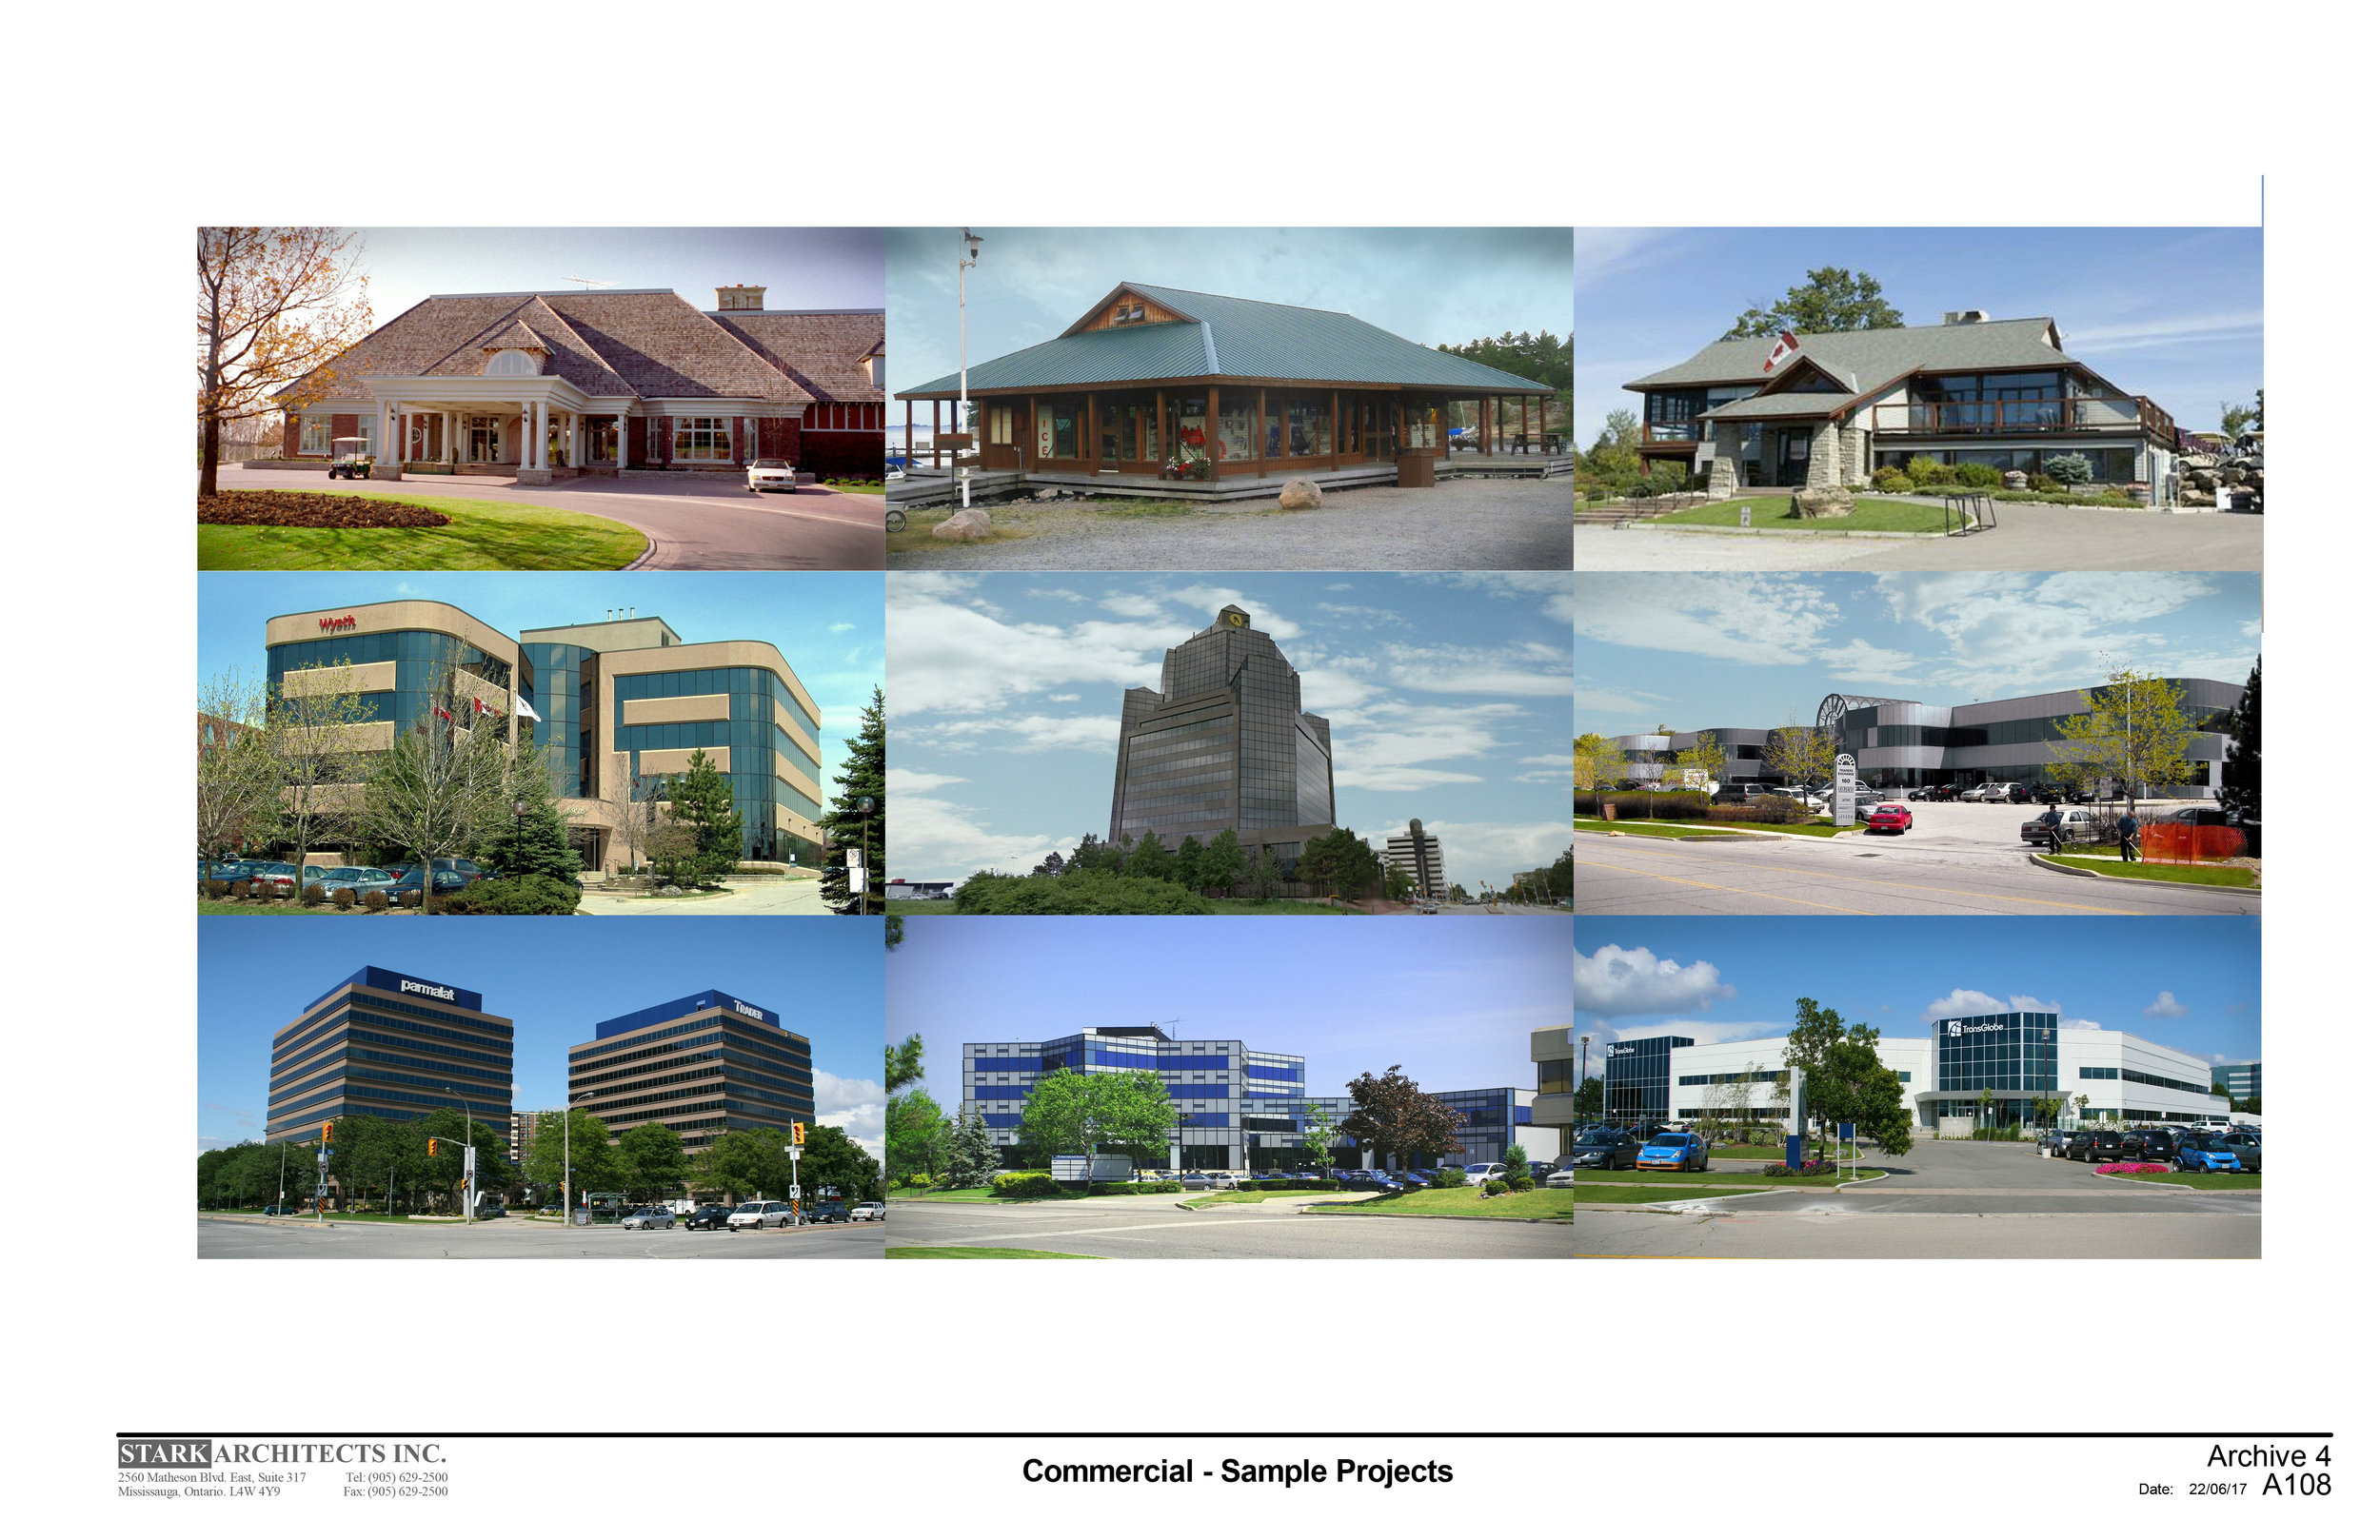 STARK ARCHITECTS INC - SAMPLE PROJECTS - COMMERCIAL - 22-06-17 - A108.jpg